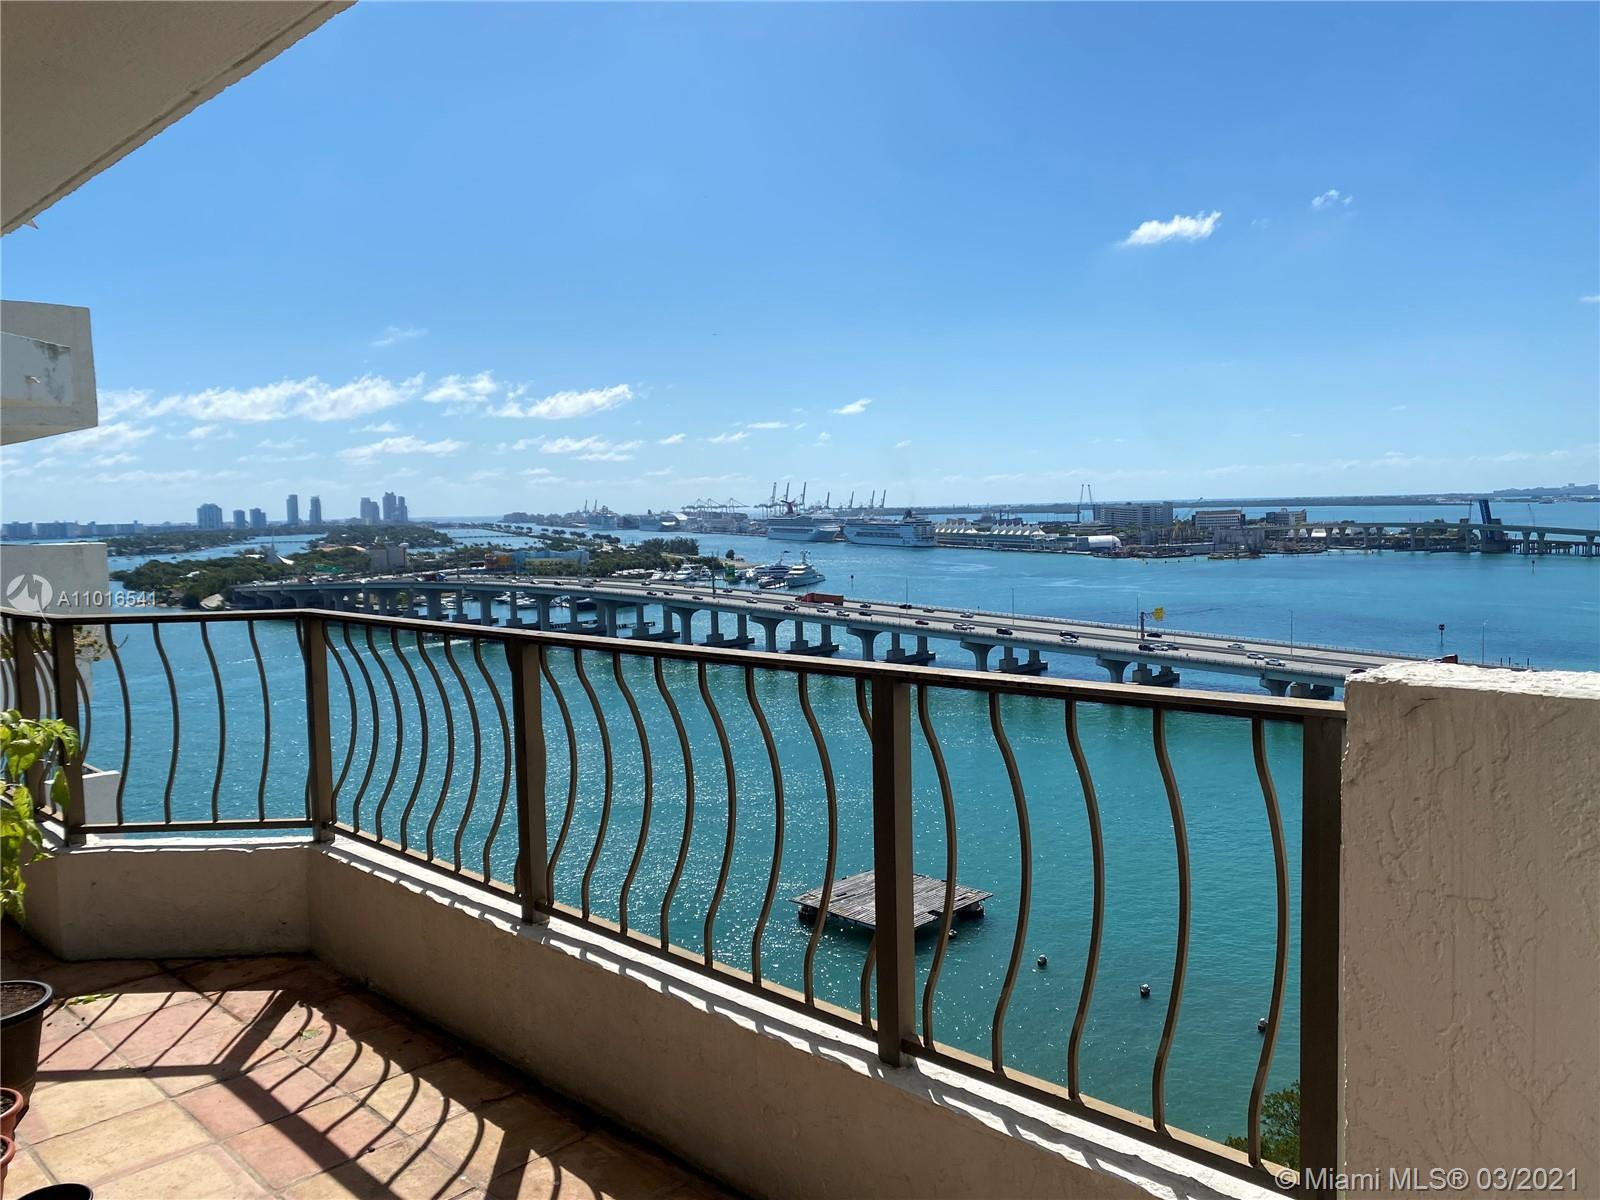 Breathtaking direct Bay views as soon as you enter the apartment of Biscayne Bay and Miami's skyline